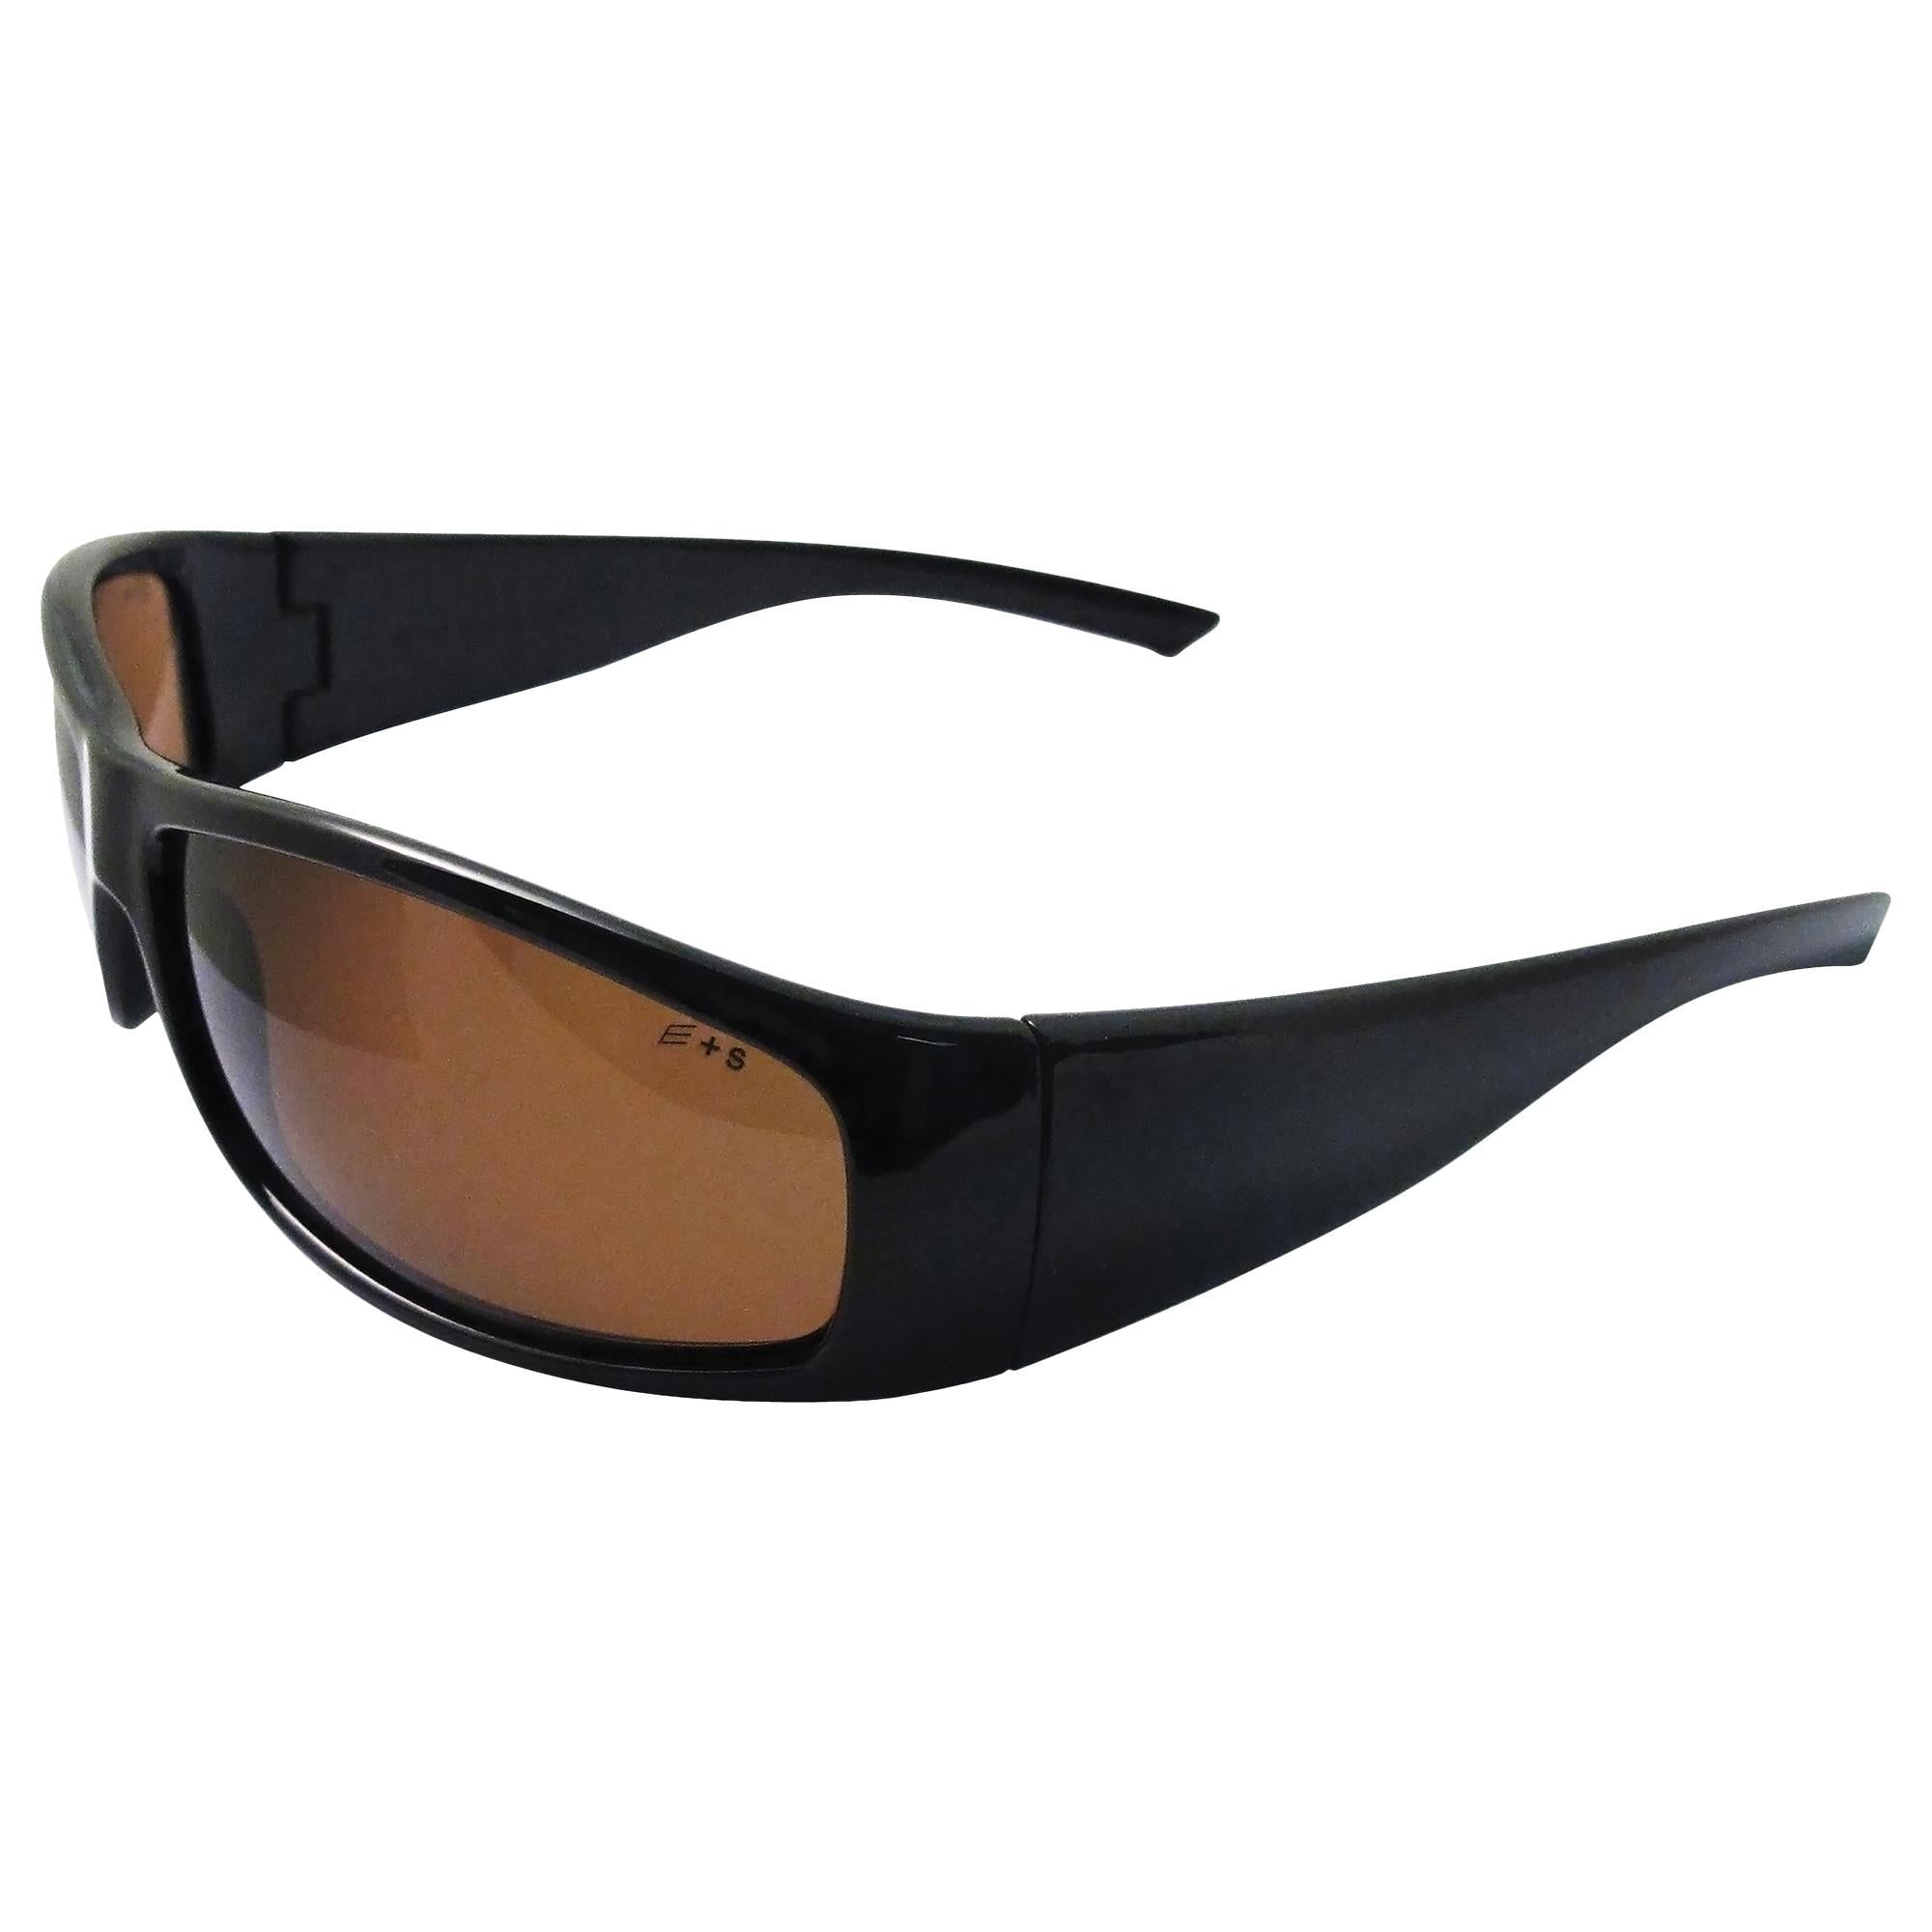 BOAS® XTREME Safety Glasses Polarized 1PC